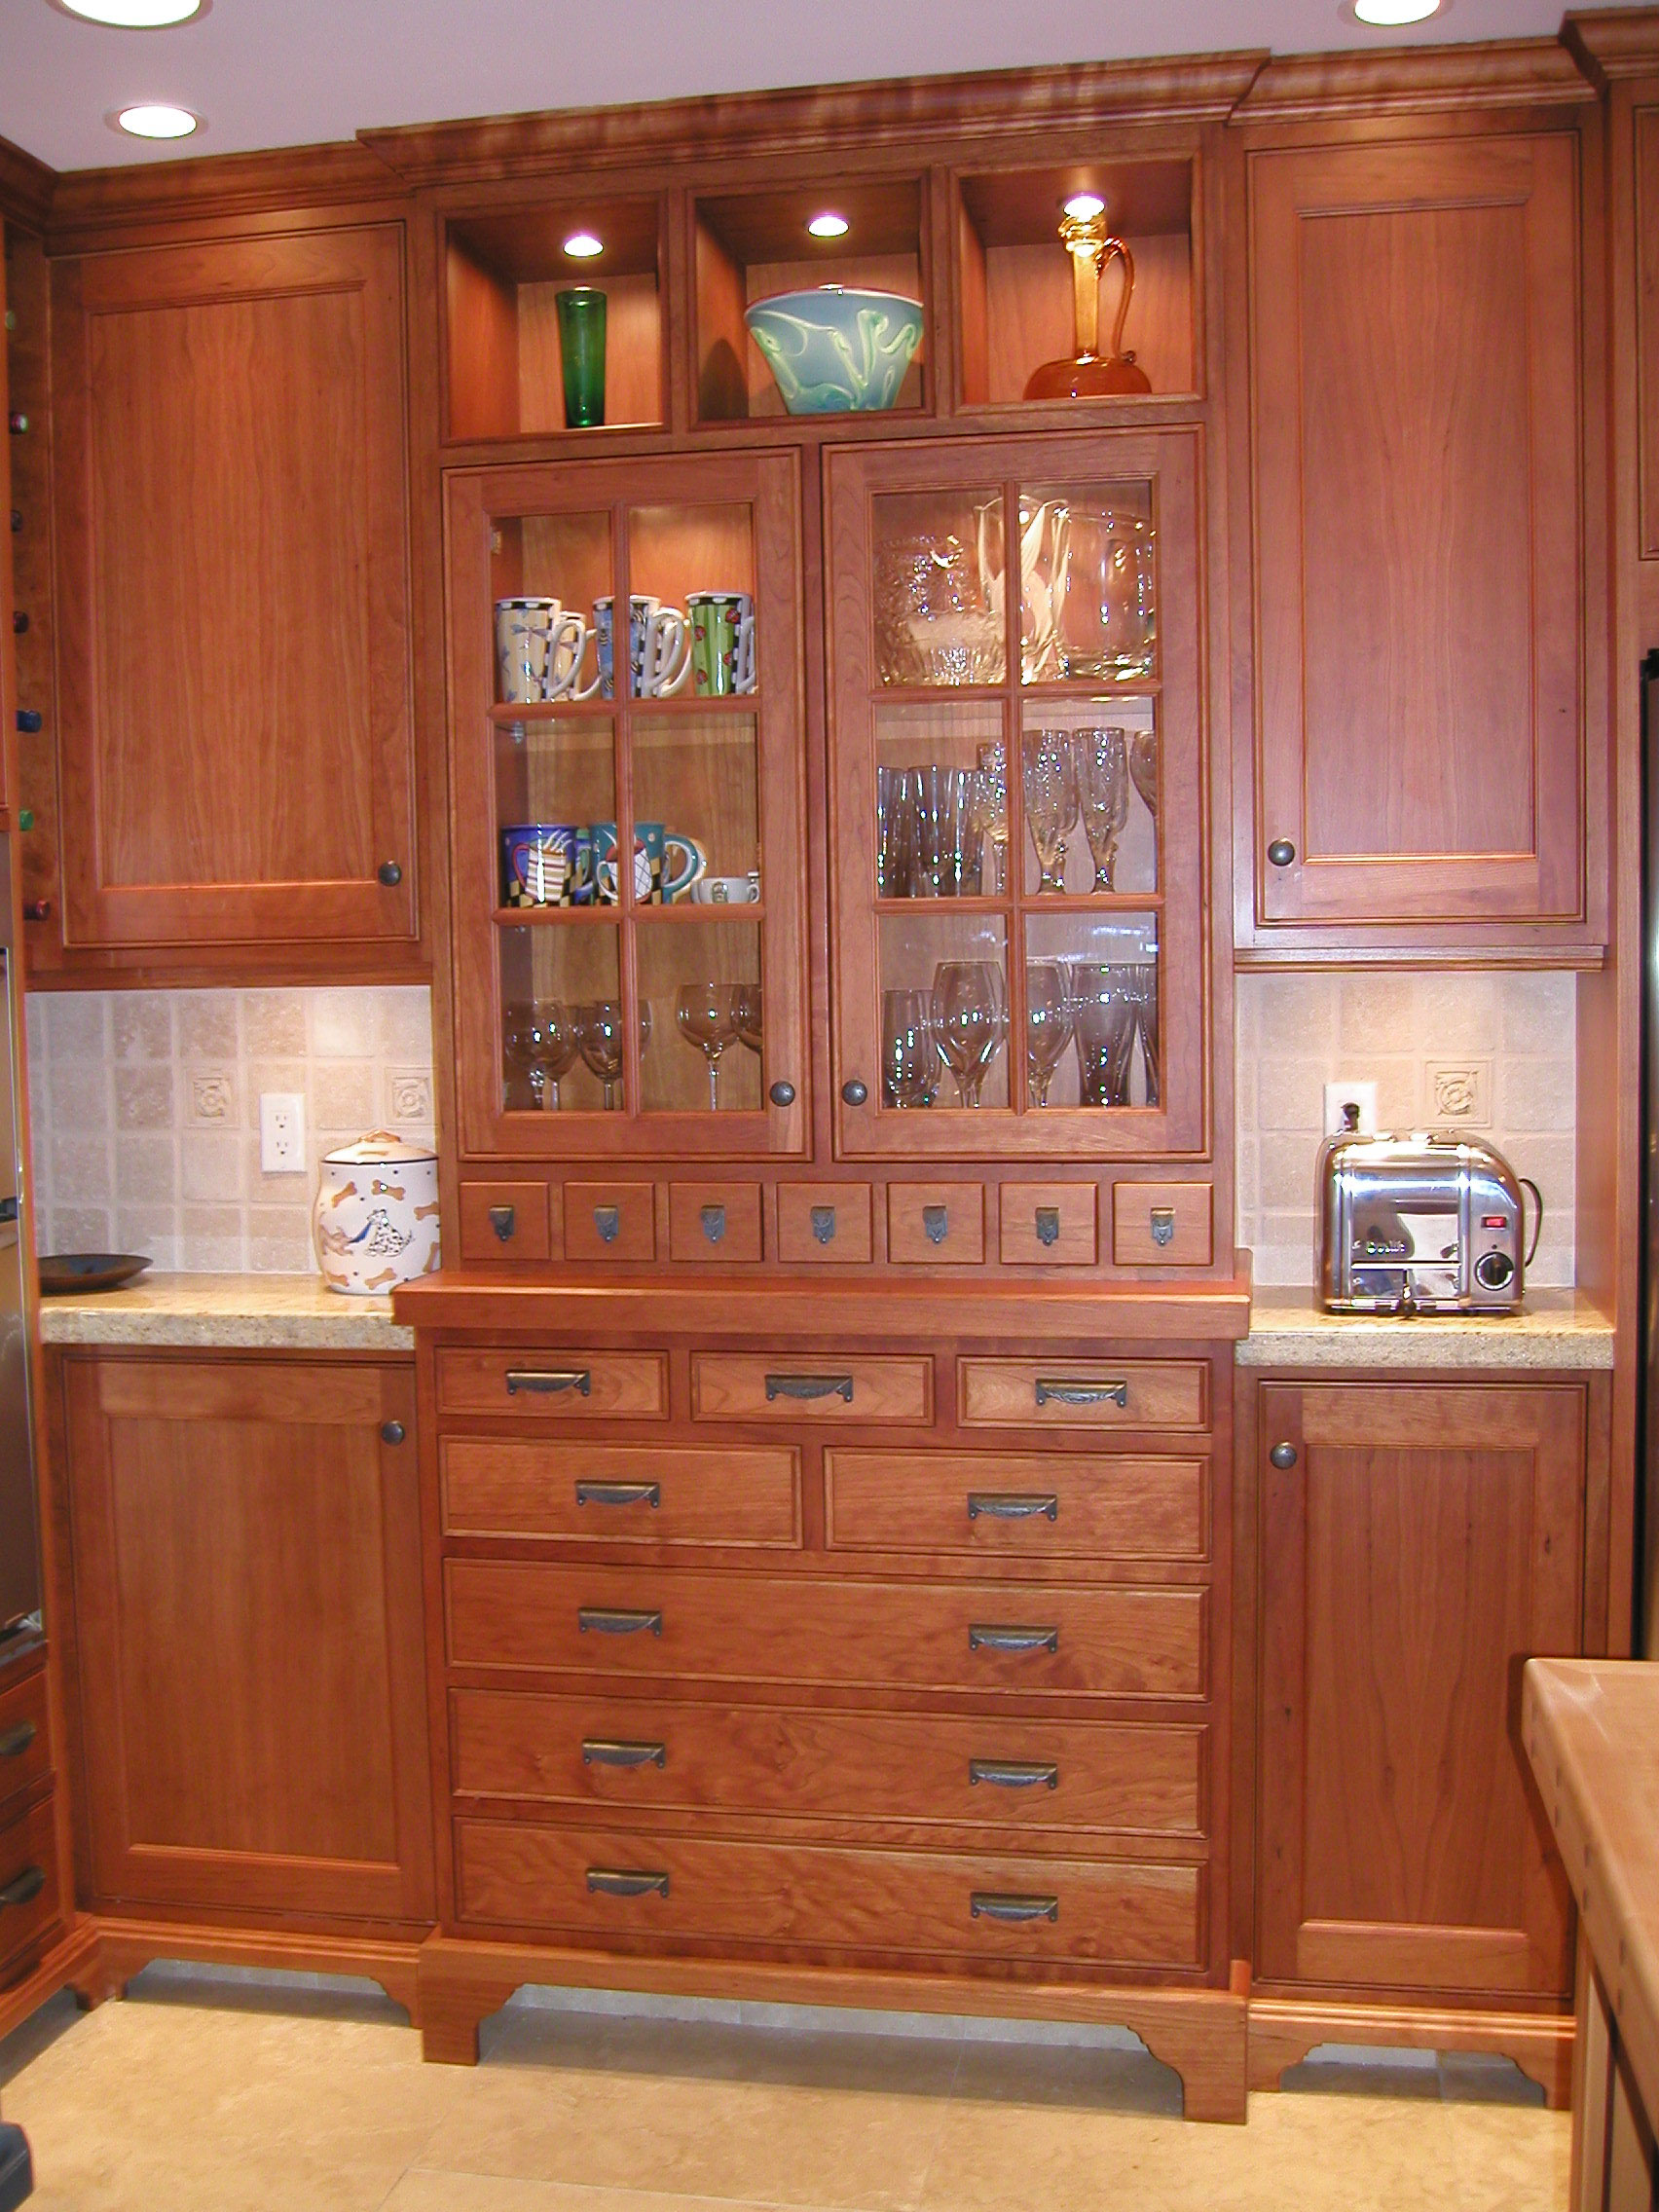 Mission Style Cabinets Kitchen Previous Painting Projects By New Life Painting New Life Painting